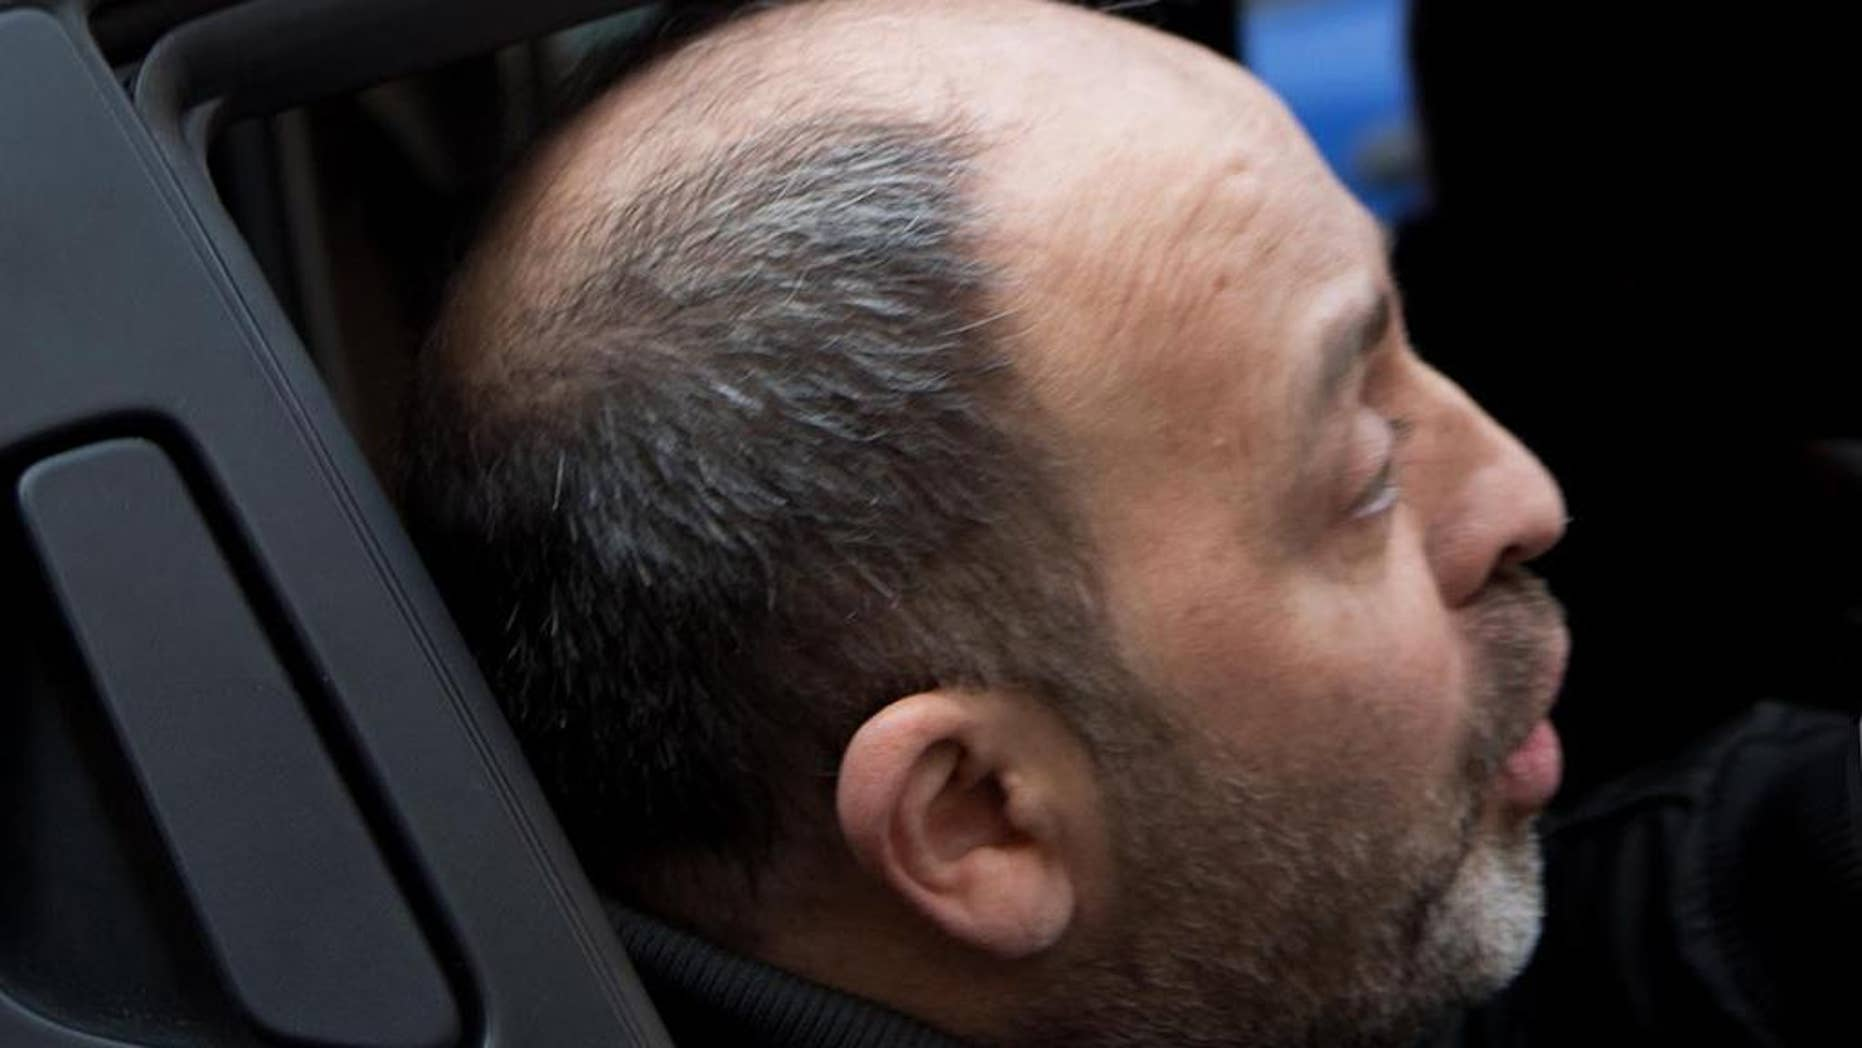 Fugitive mobster Santo Vottari is taken into custody by Italian Carabinieri after they found him hiding in a cramped crawl space behind a trap door of a bunker in an apartment building in the southern Italian town of Ricciolino di Benestare, Wednesday, March 22, 2017.  Vottari, who, according to authorities, is tied to a crime clan involved in a 2007 massacre of 6 Italians in Duisburg, Germany, had been convicted in absentia of mafia-like association. (Marco Costantino/ANSA via AP)